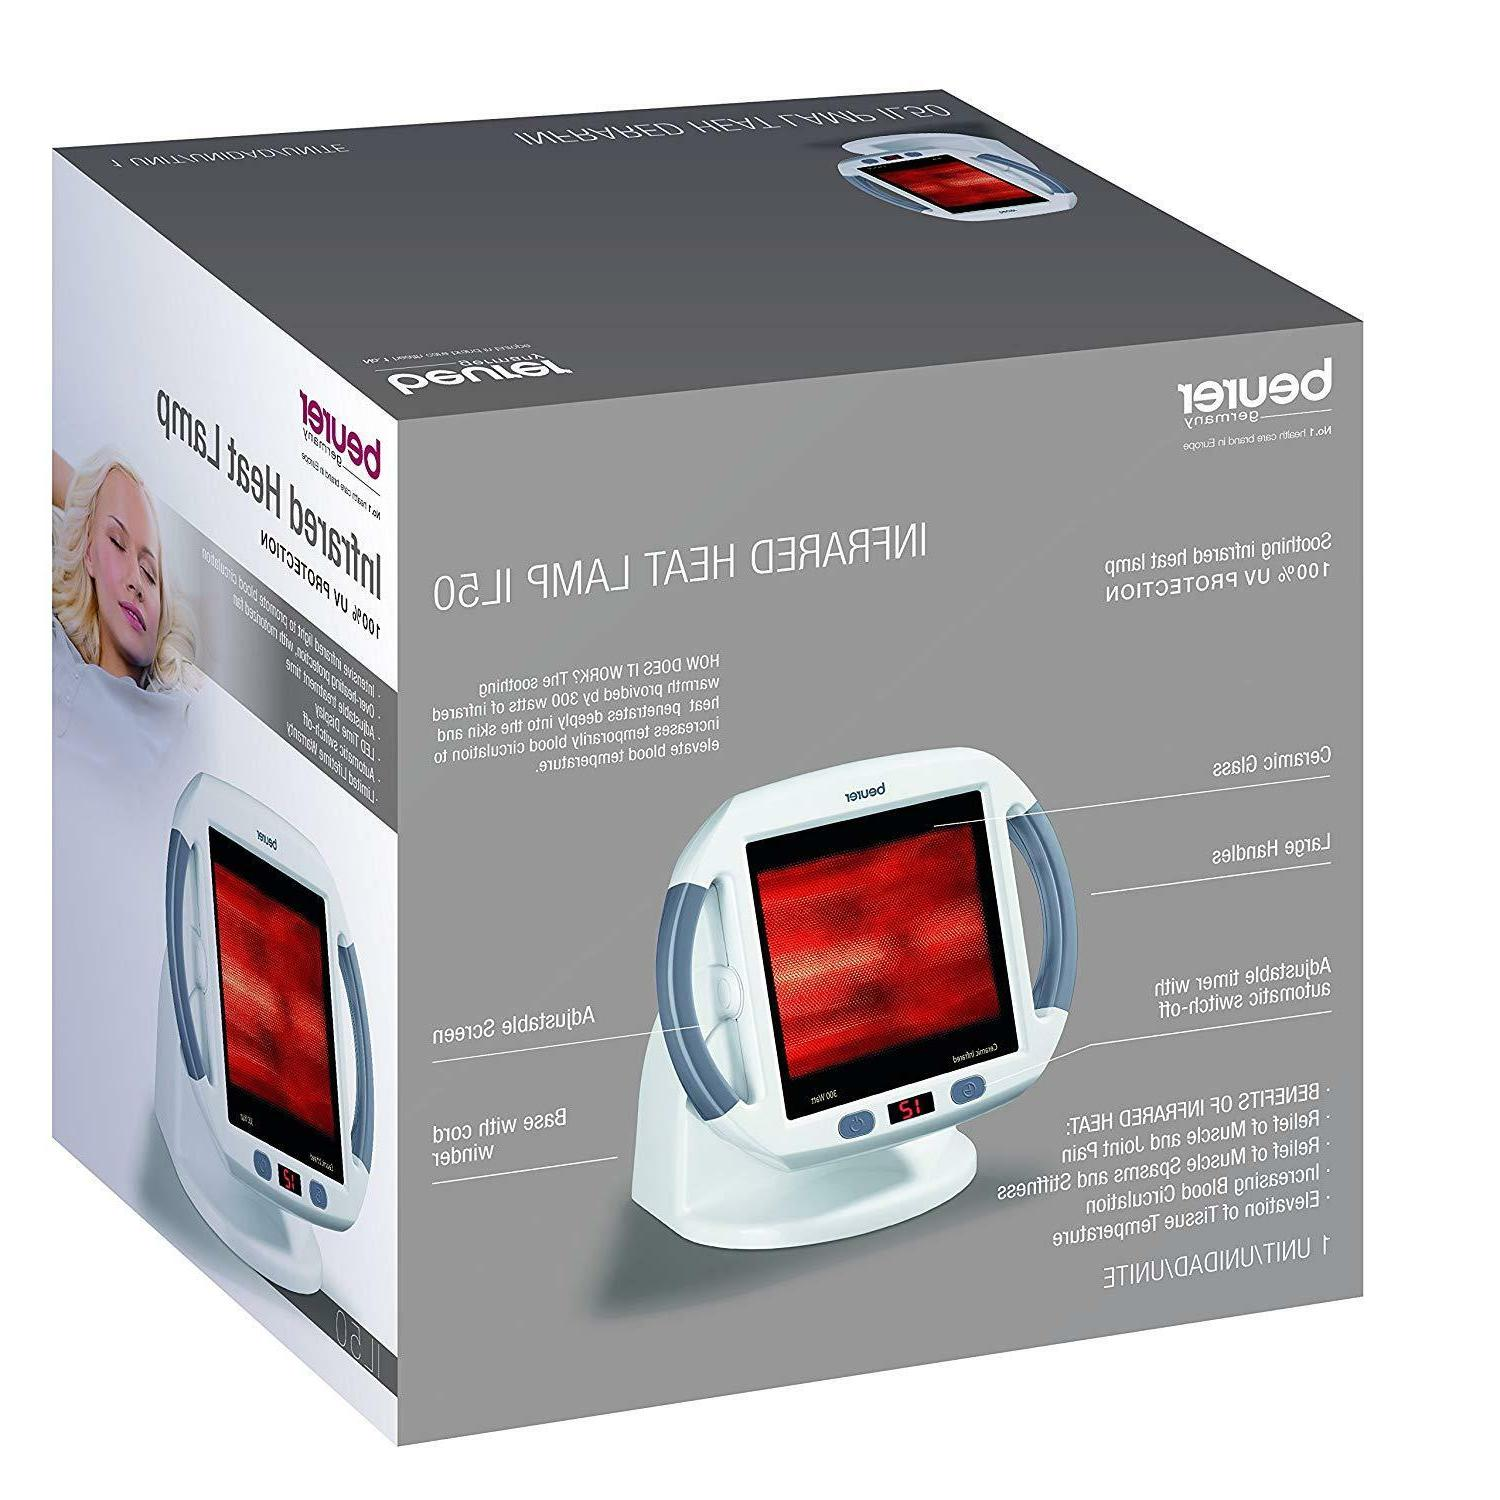 Beurer Infrared Light Lamp Red Light Therapy, Blood